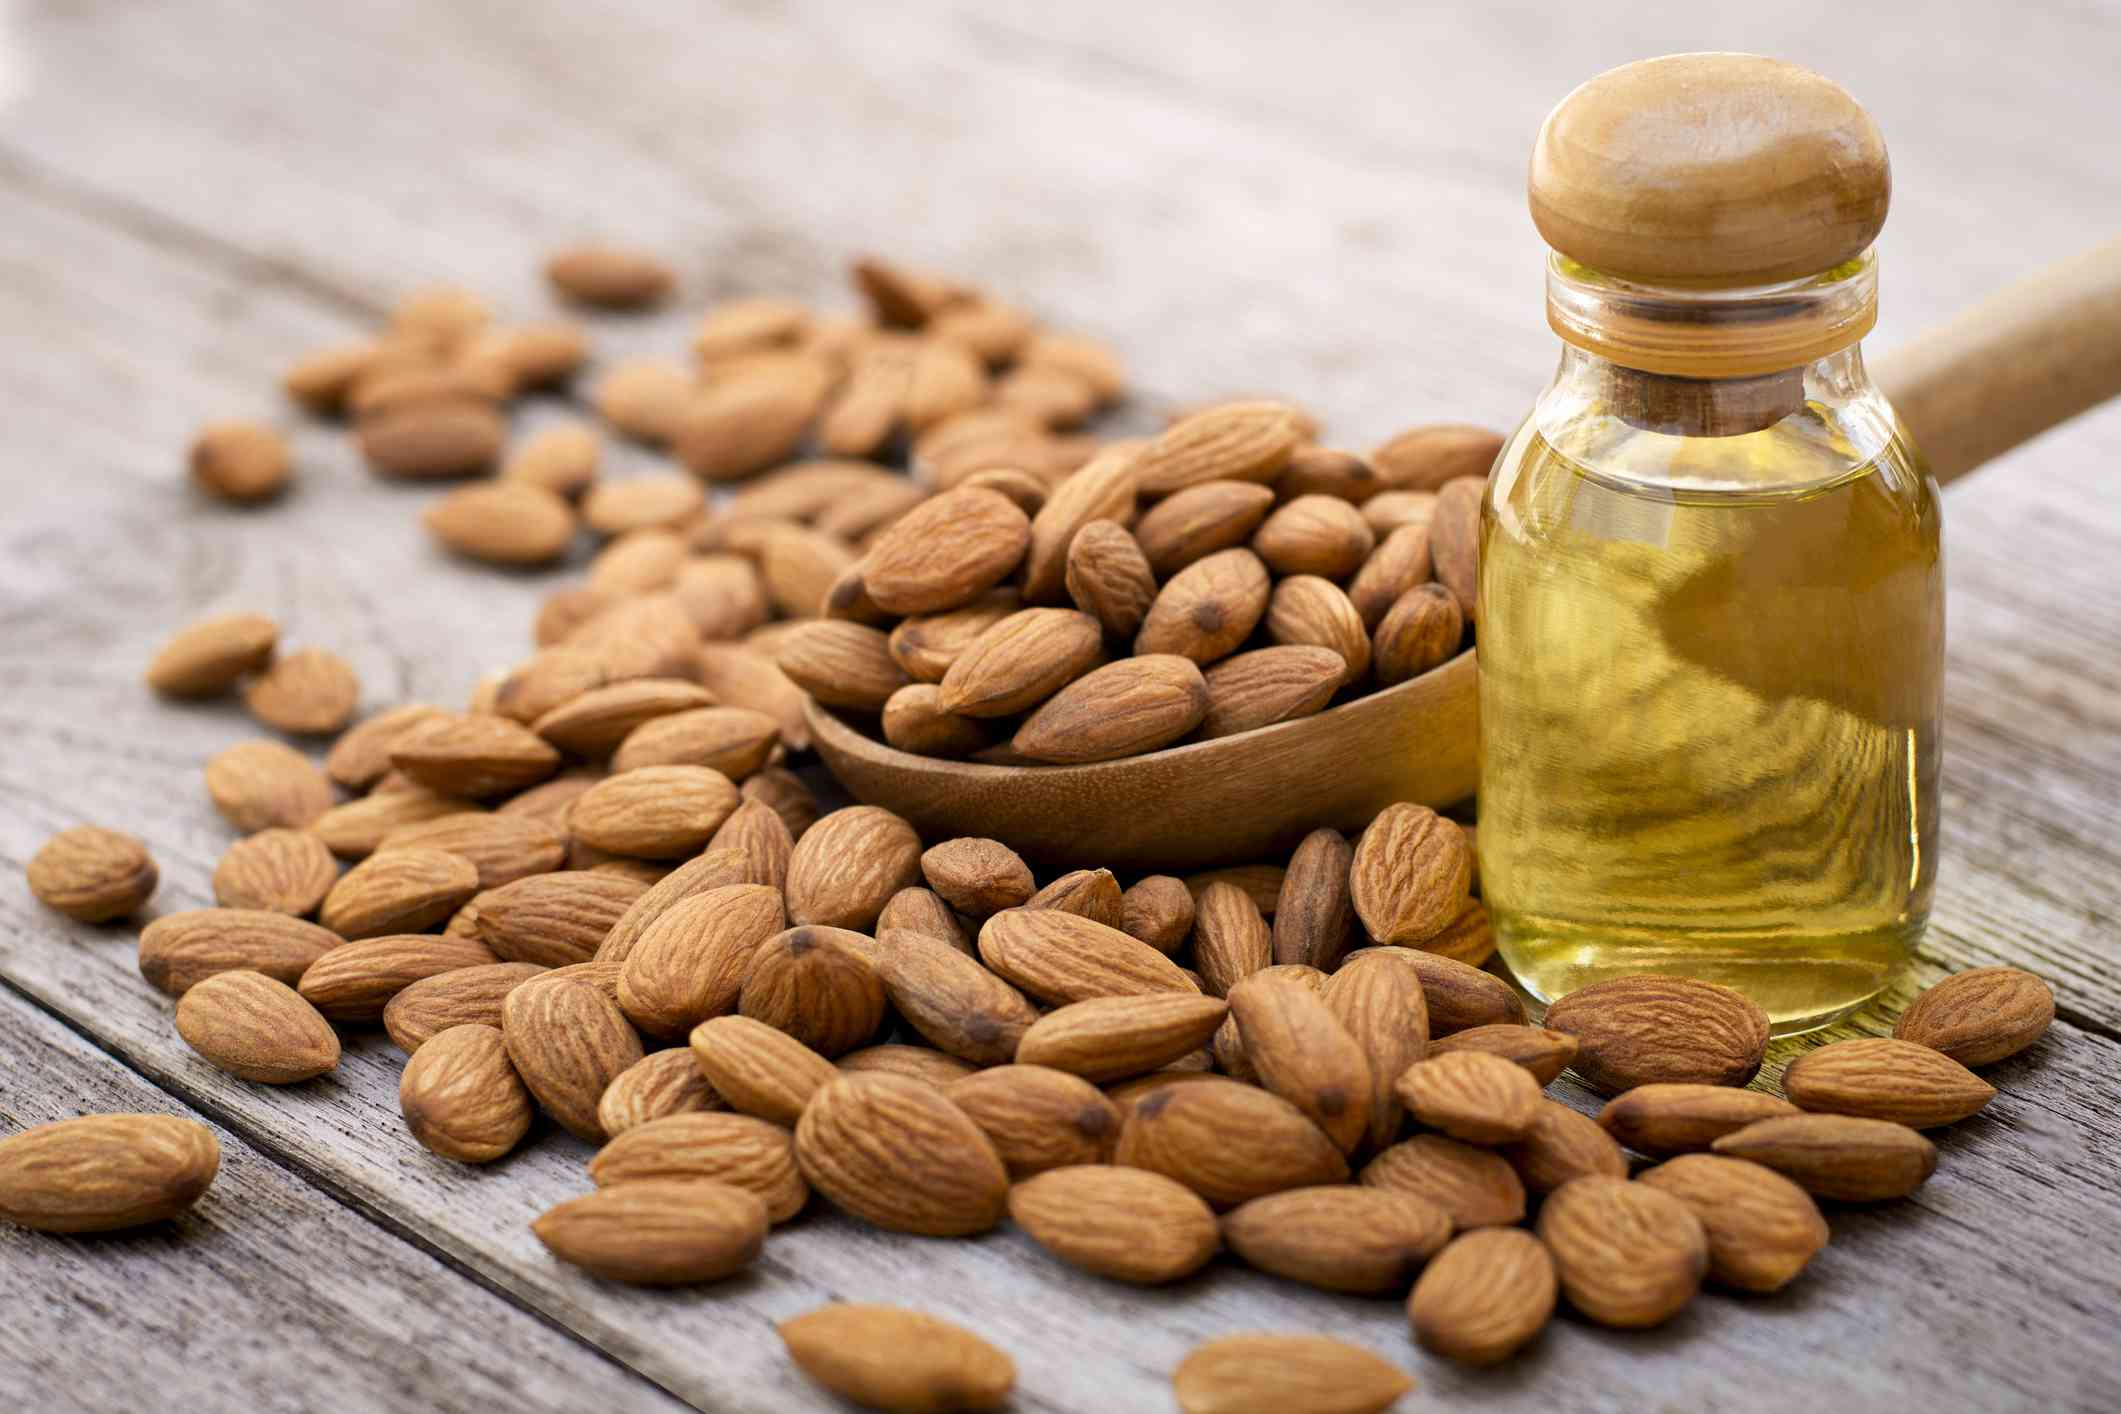 Closeup almond oil in glass bottle and group of almond nuts in wooden spoon isolated on wood table background.